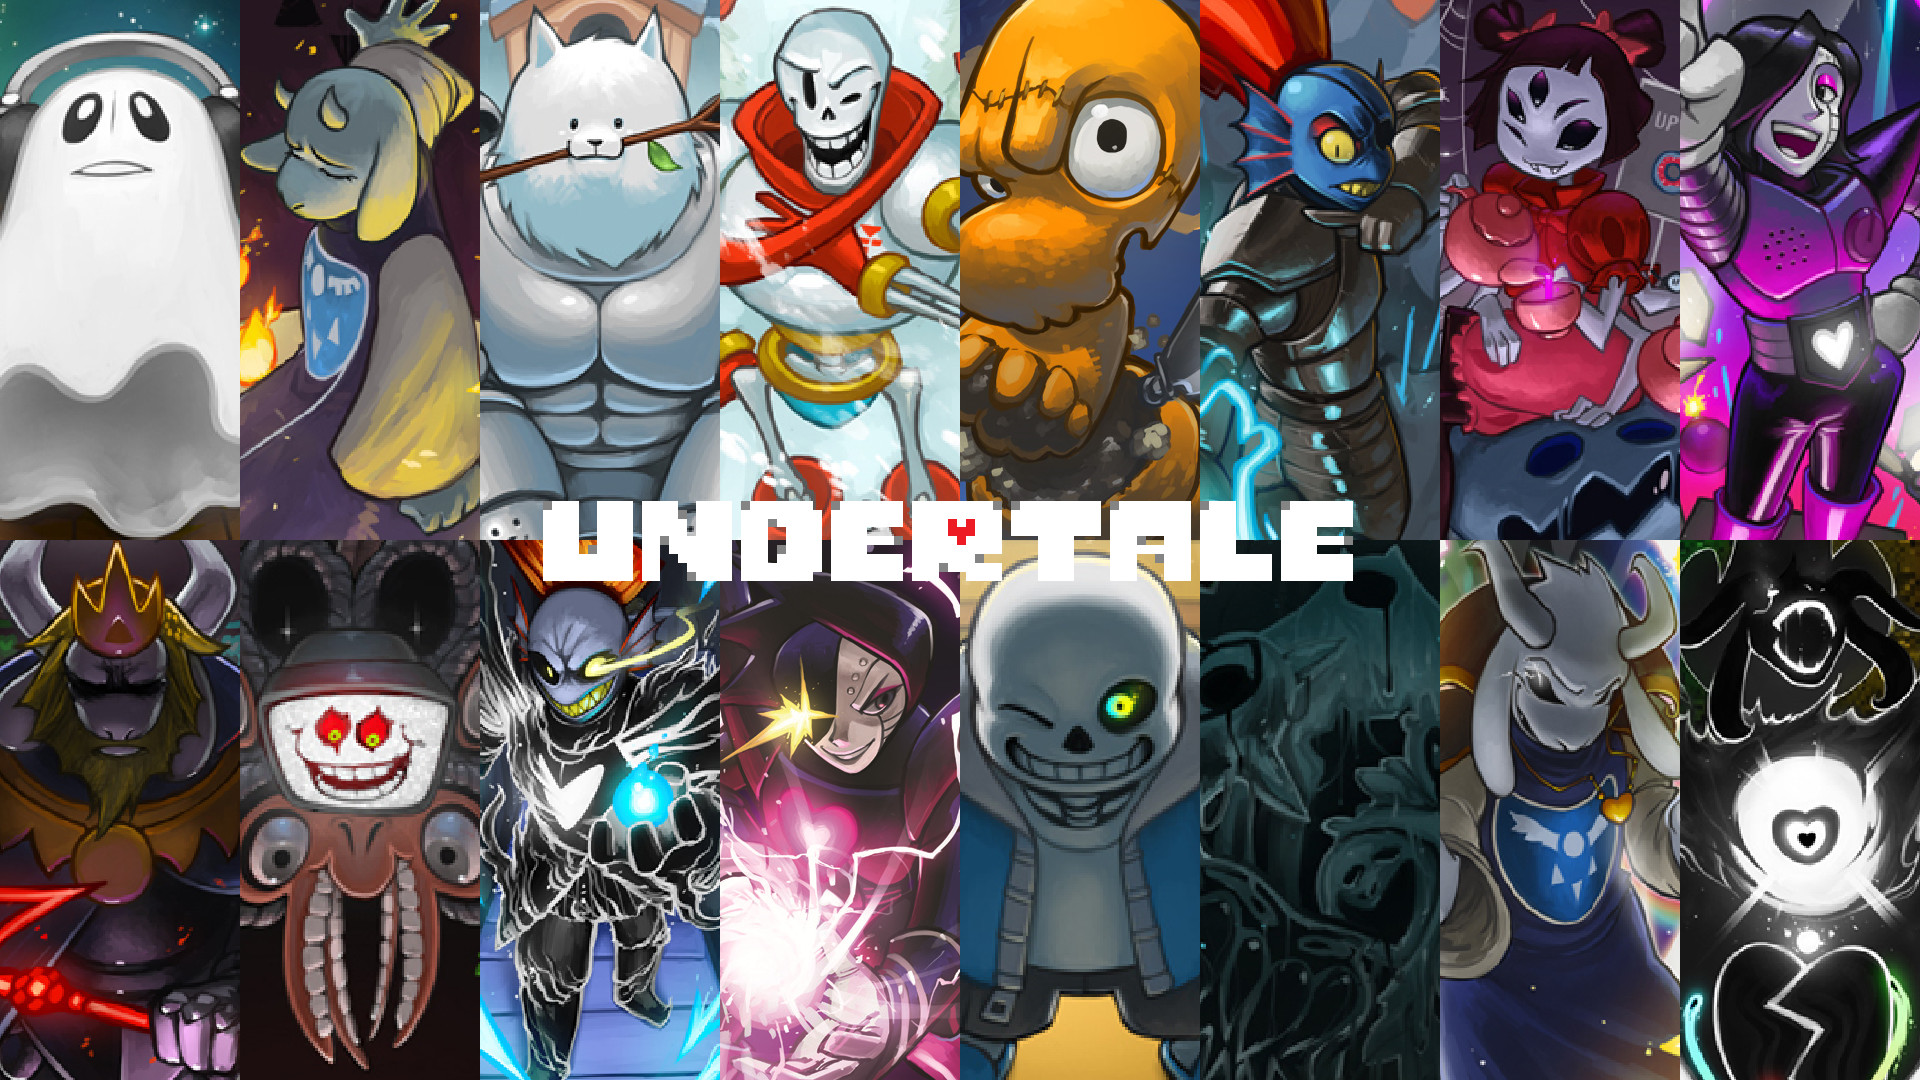 Anime Girl Wallpapers Phone Undertale Wallpapers 183 ①